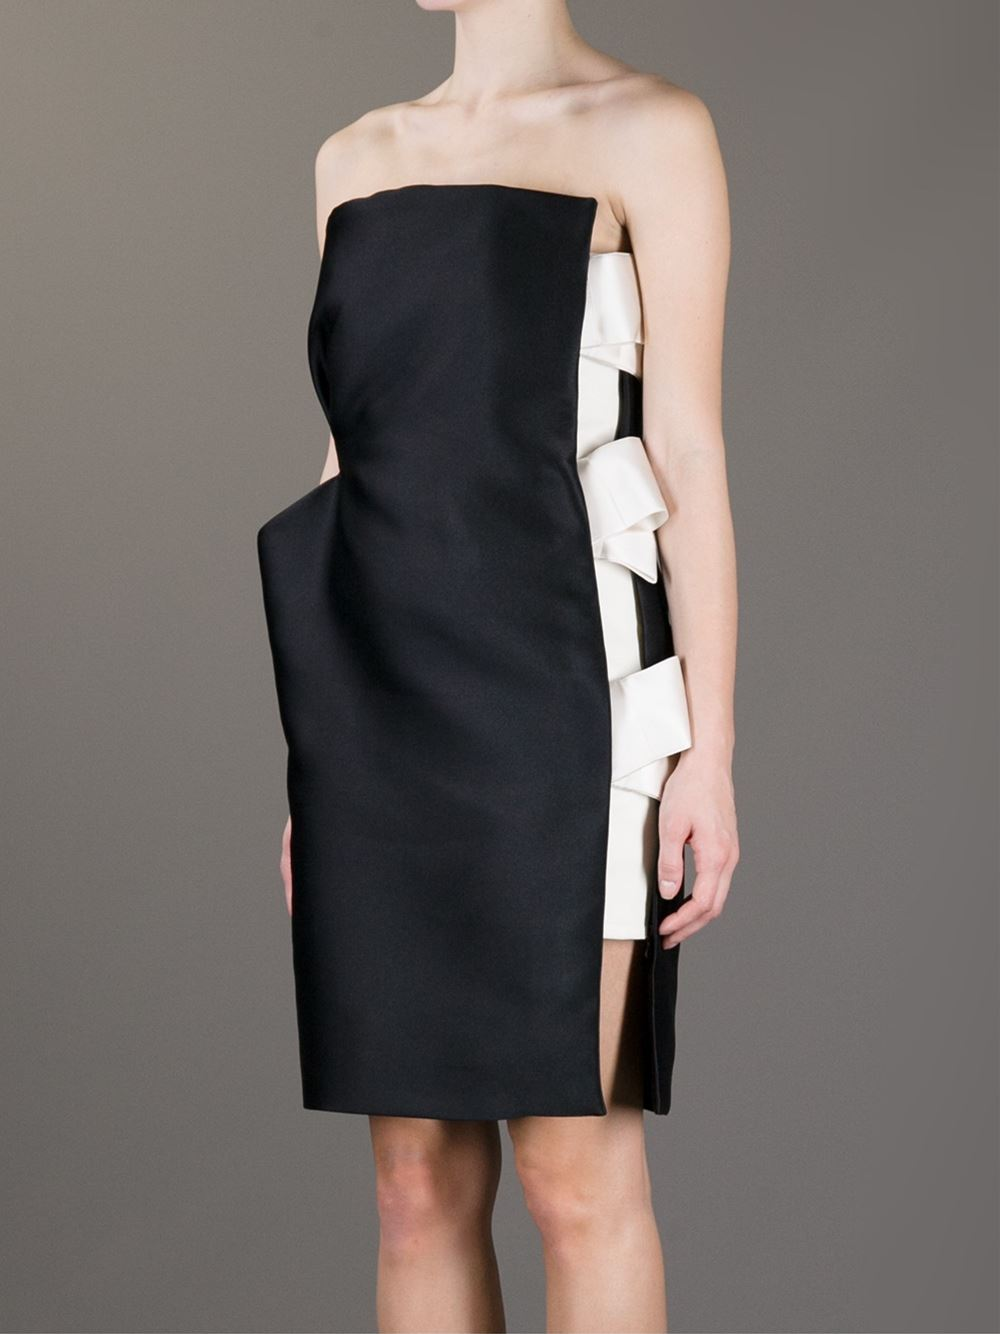 Lanvin Bow Detail Strapless Dress - Biffi - Farfetch.com